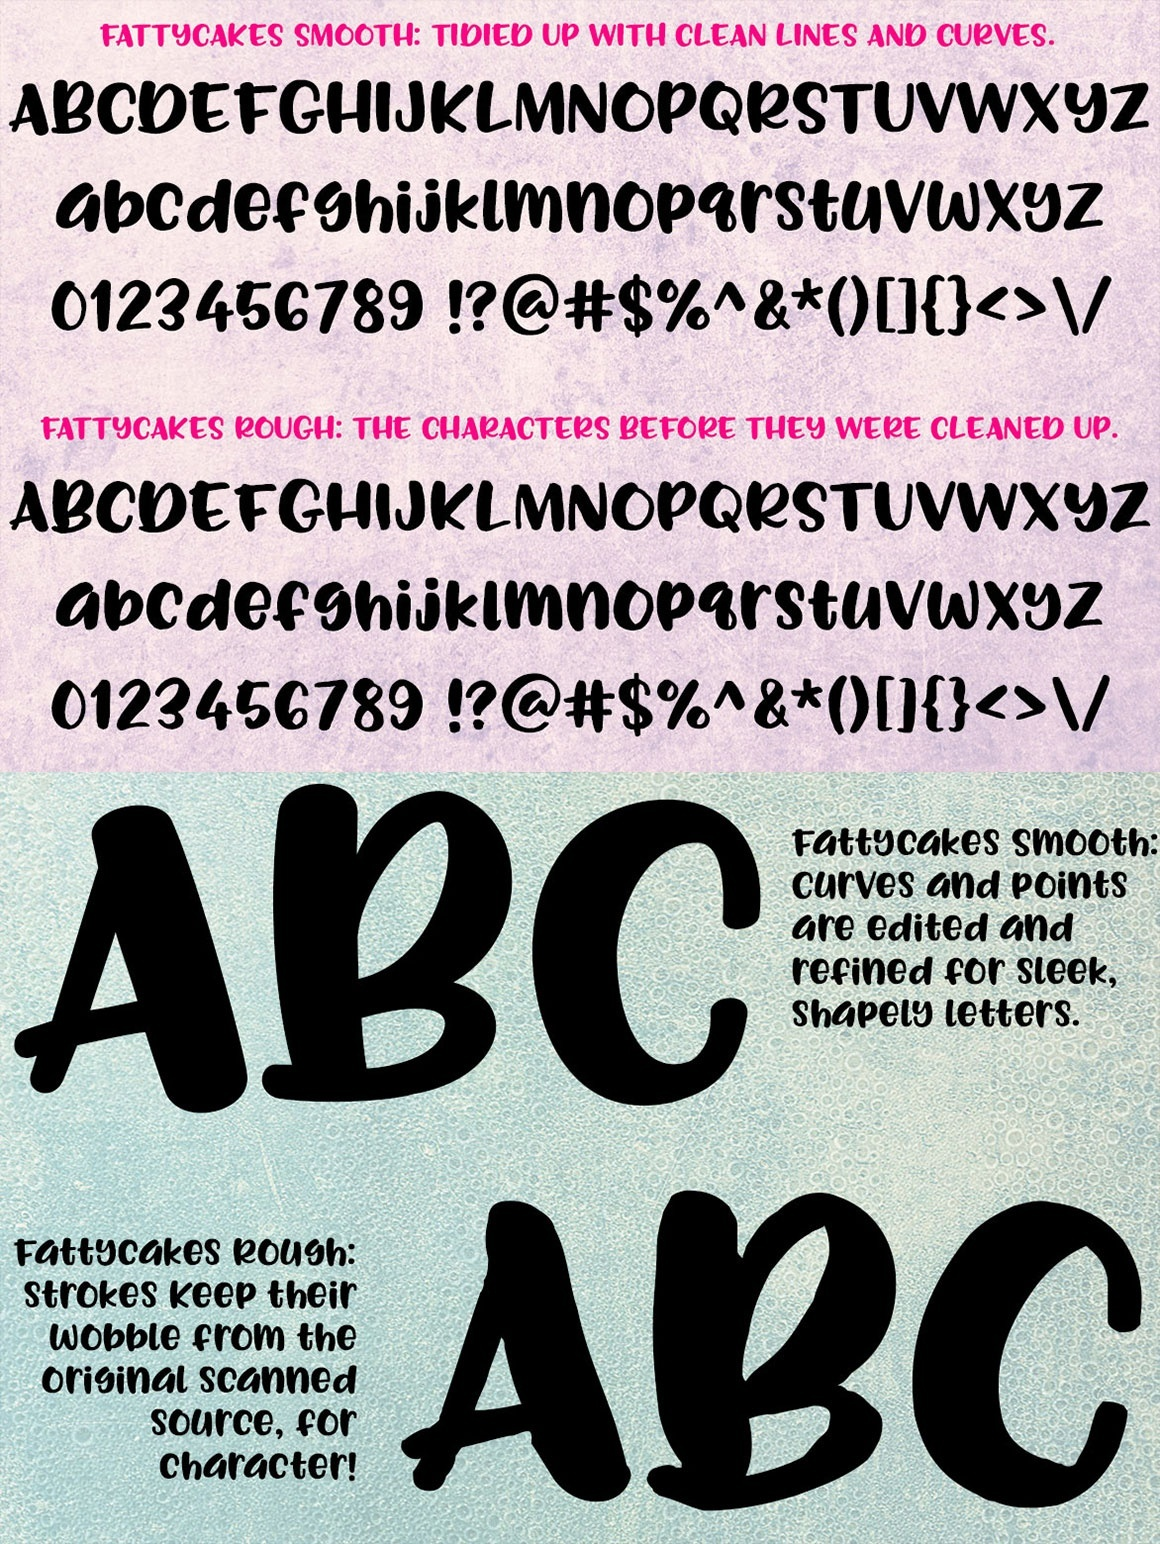 Fattycakes: a plump little font!